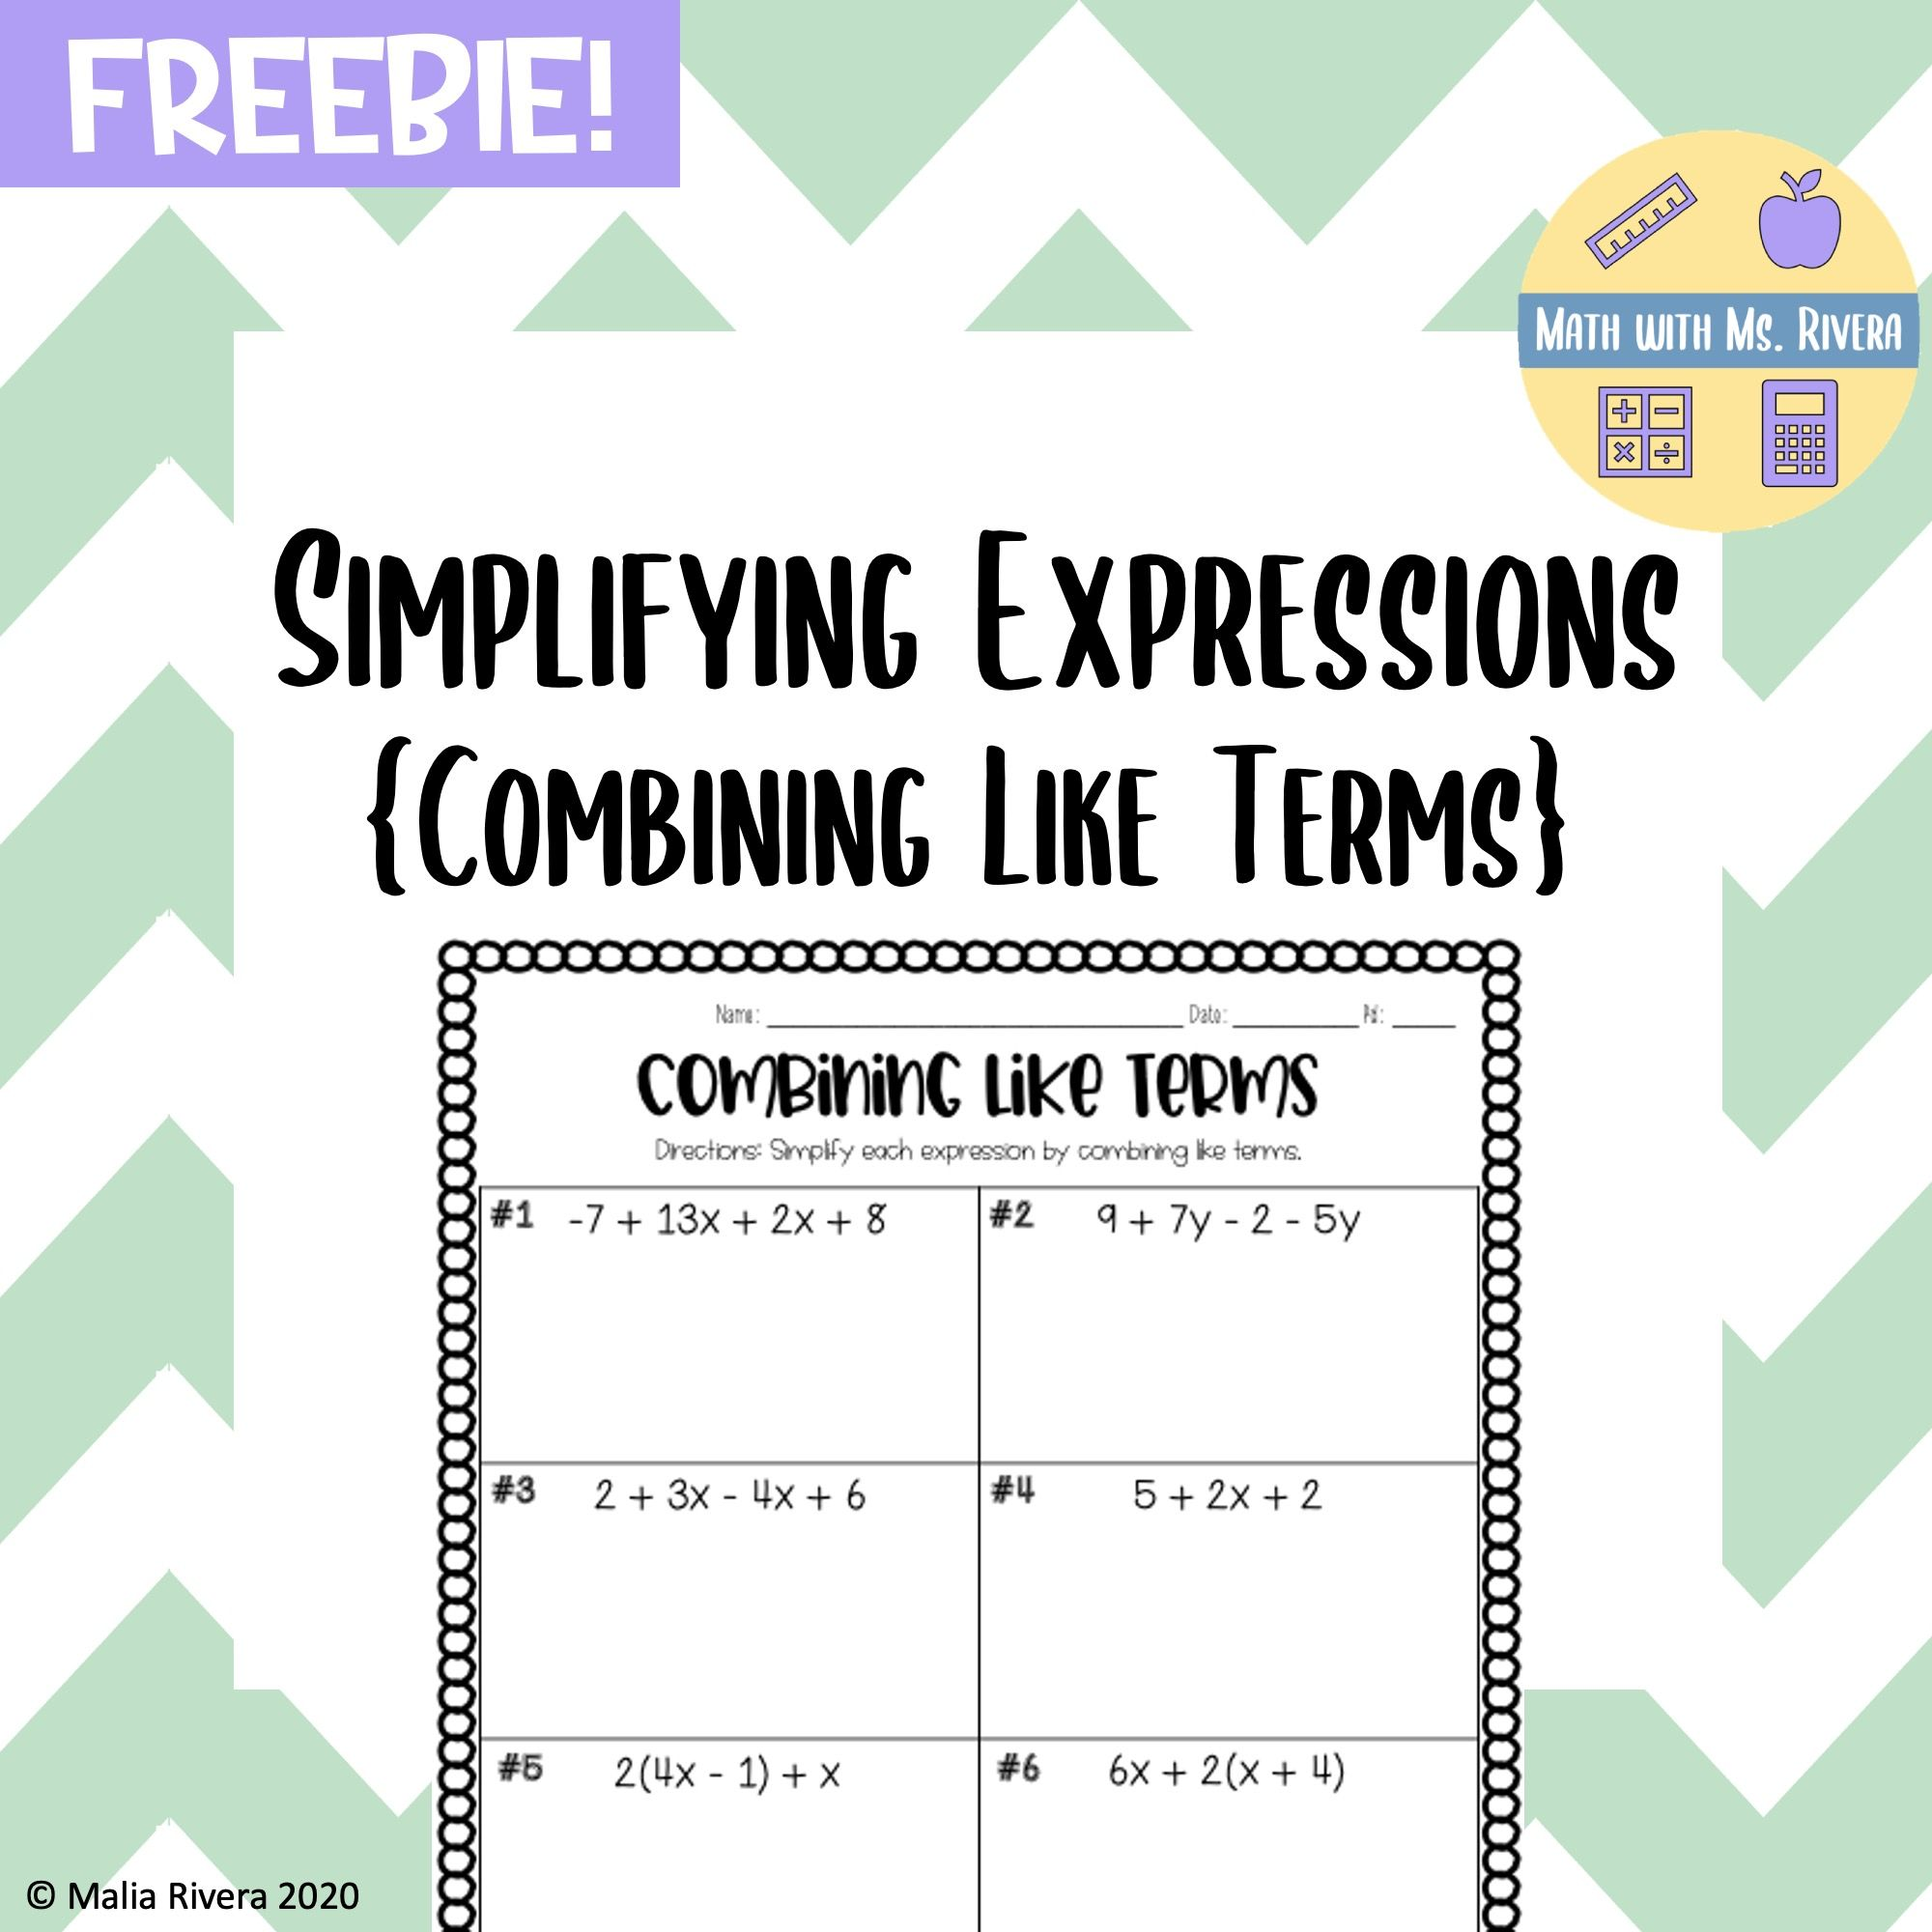 Simplifying Expressions Combining Like Terms Worksheet Freebie Simplifying Expressions Evaluating Expressions Evaluating Algebraic Expressions